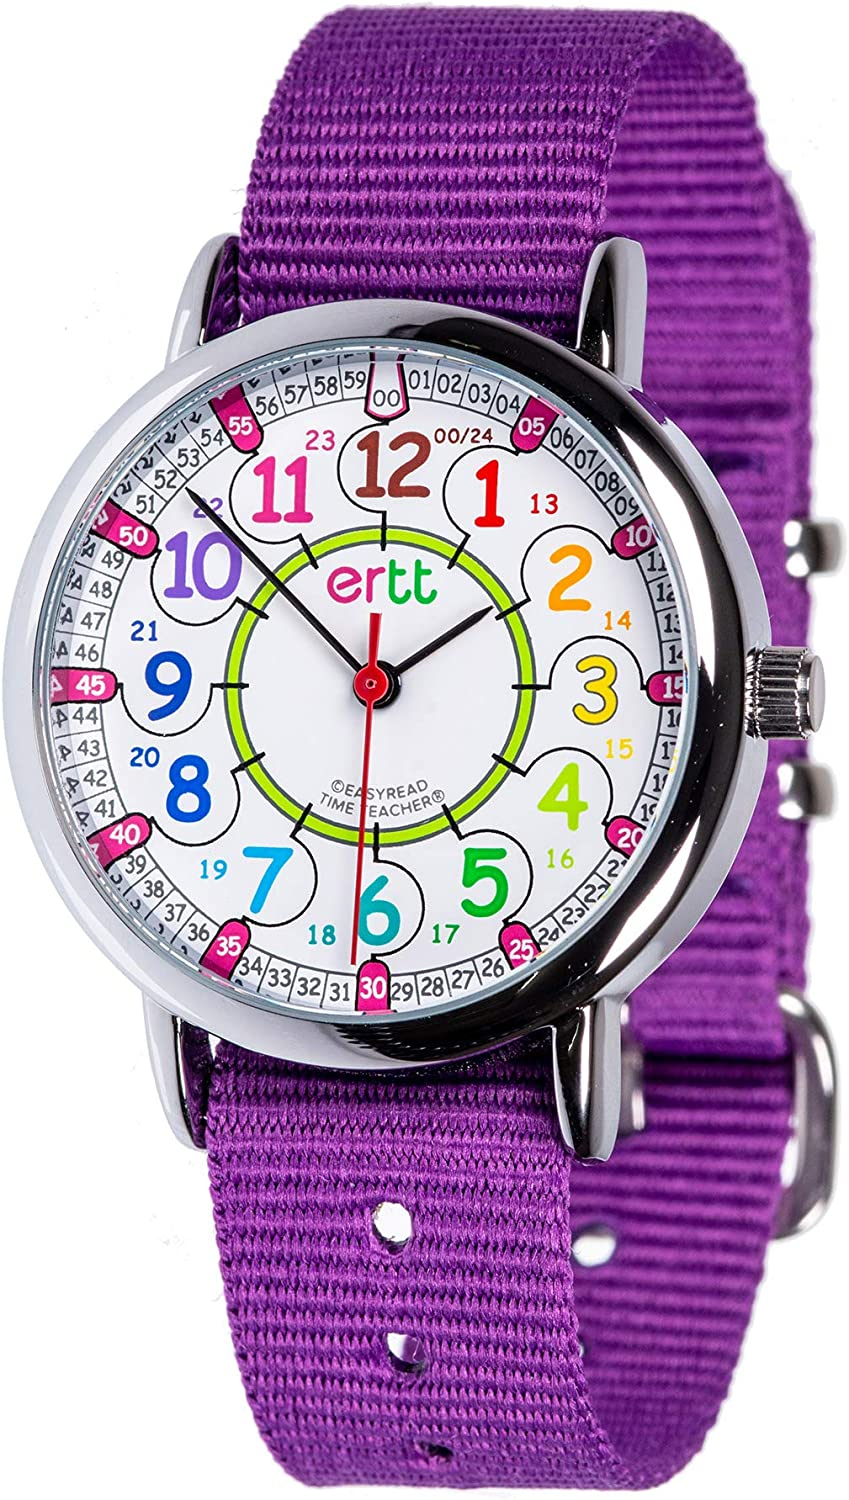 EasyRead Time Teacher Analog Learn The Time Childrens Watch Purple #ERW-COL-24